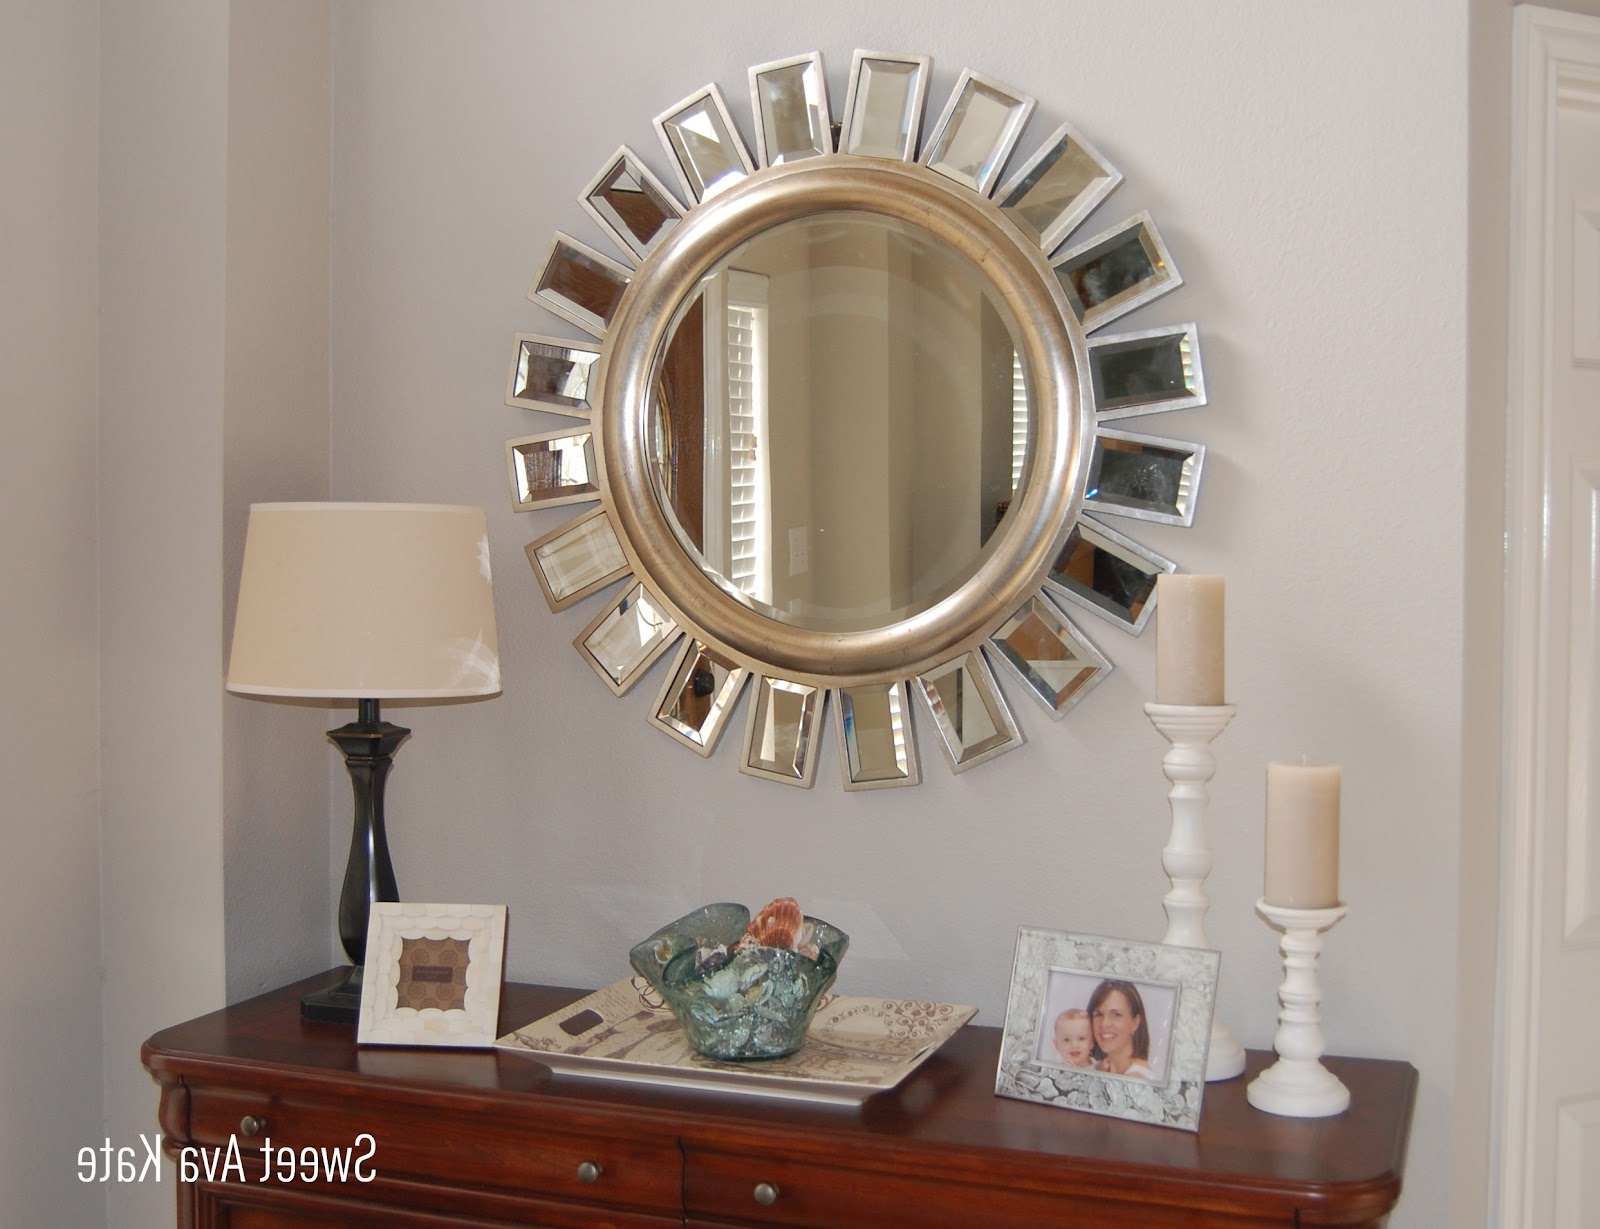 Home Goods Wall Mirrors Regarding Preferred Home Goods Wall Mirrors (Gallery 6 of 20)